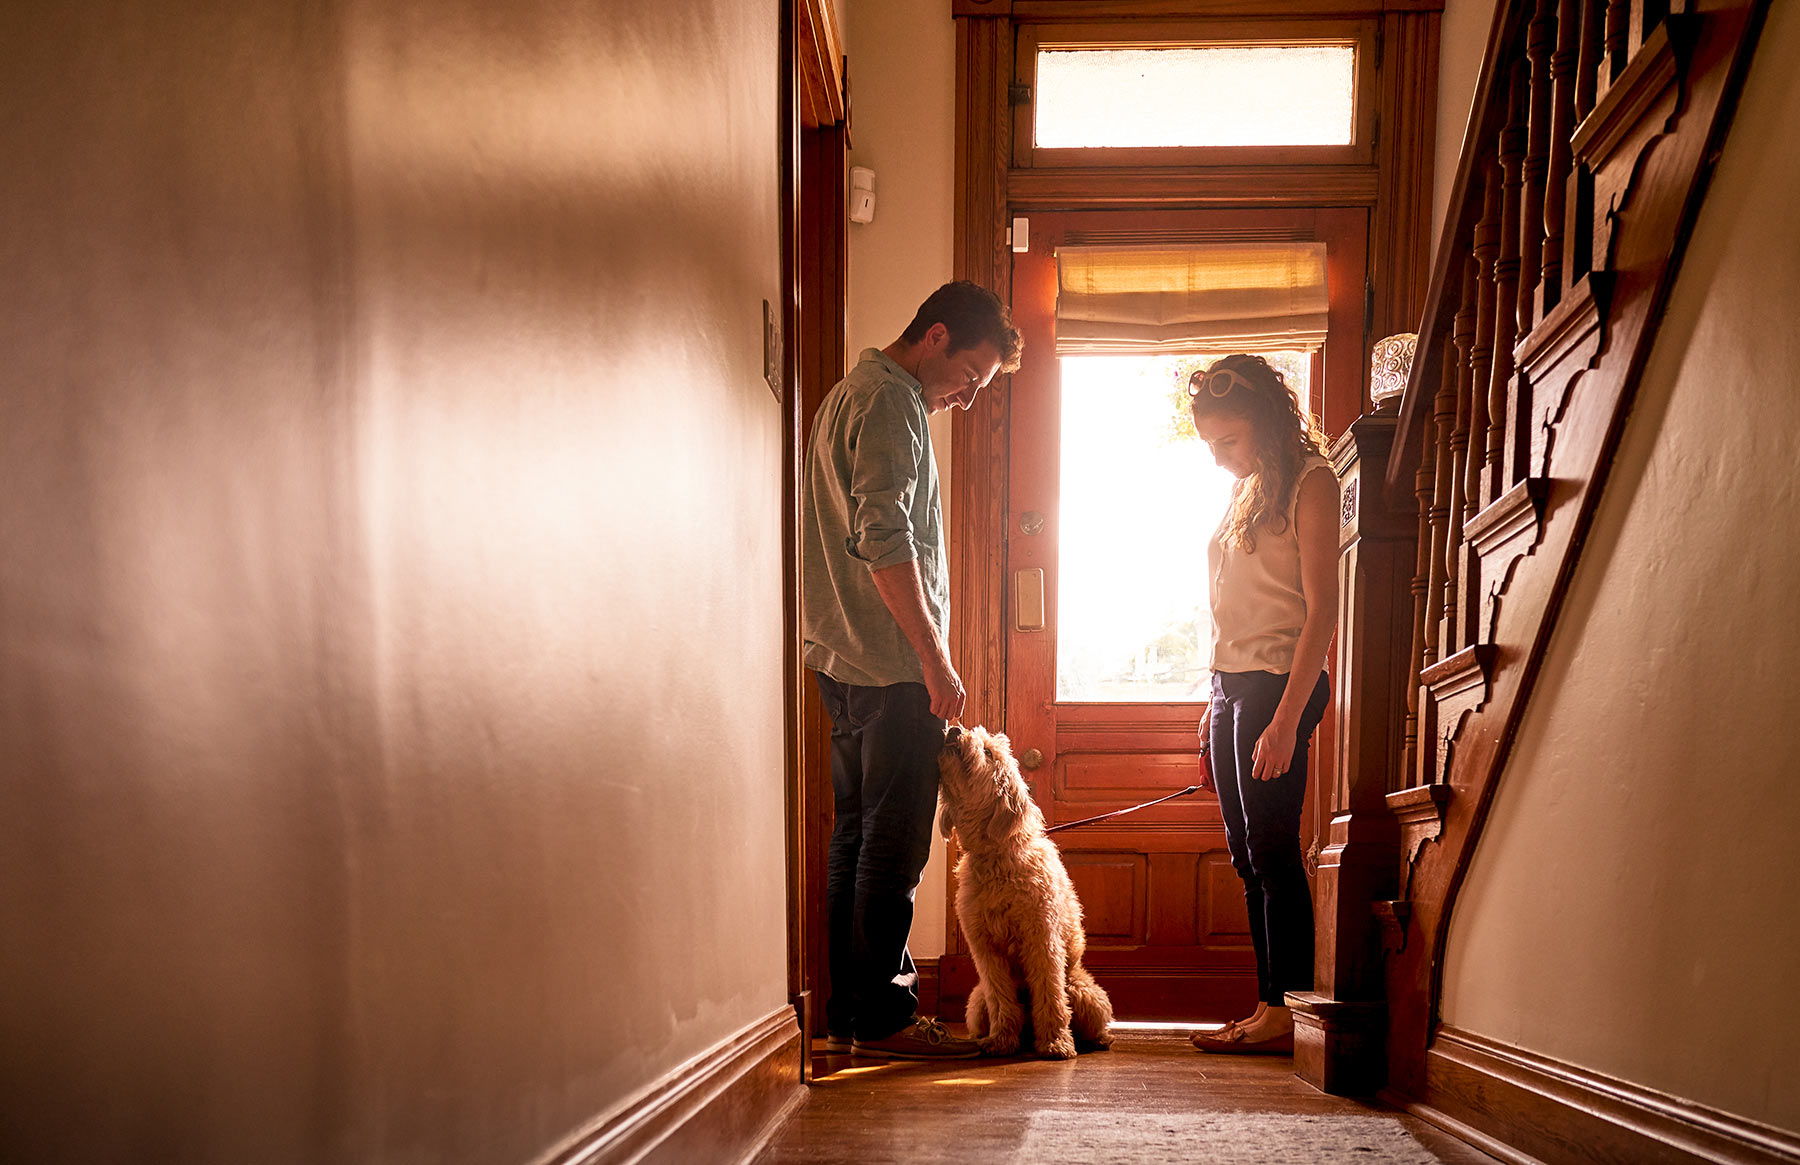 A-young-couple-greeting-their-dog-in-the-doorway-of-their-house